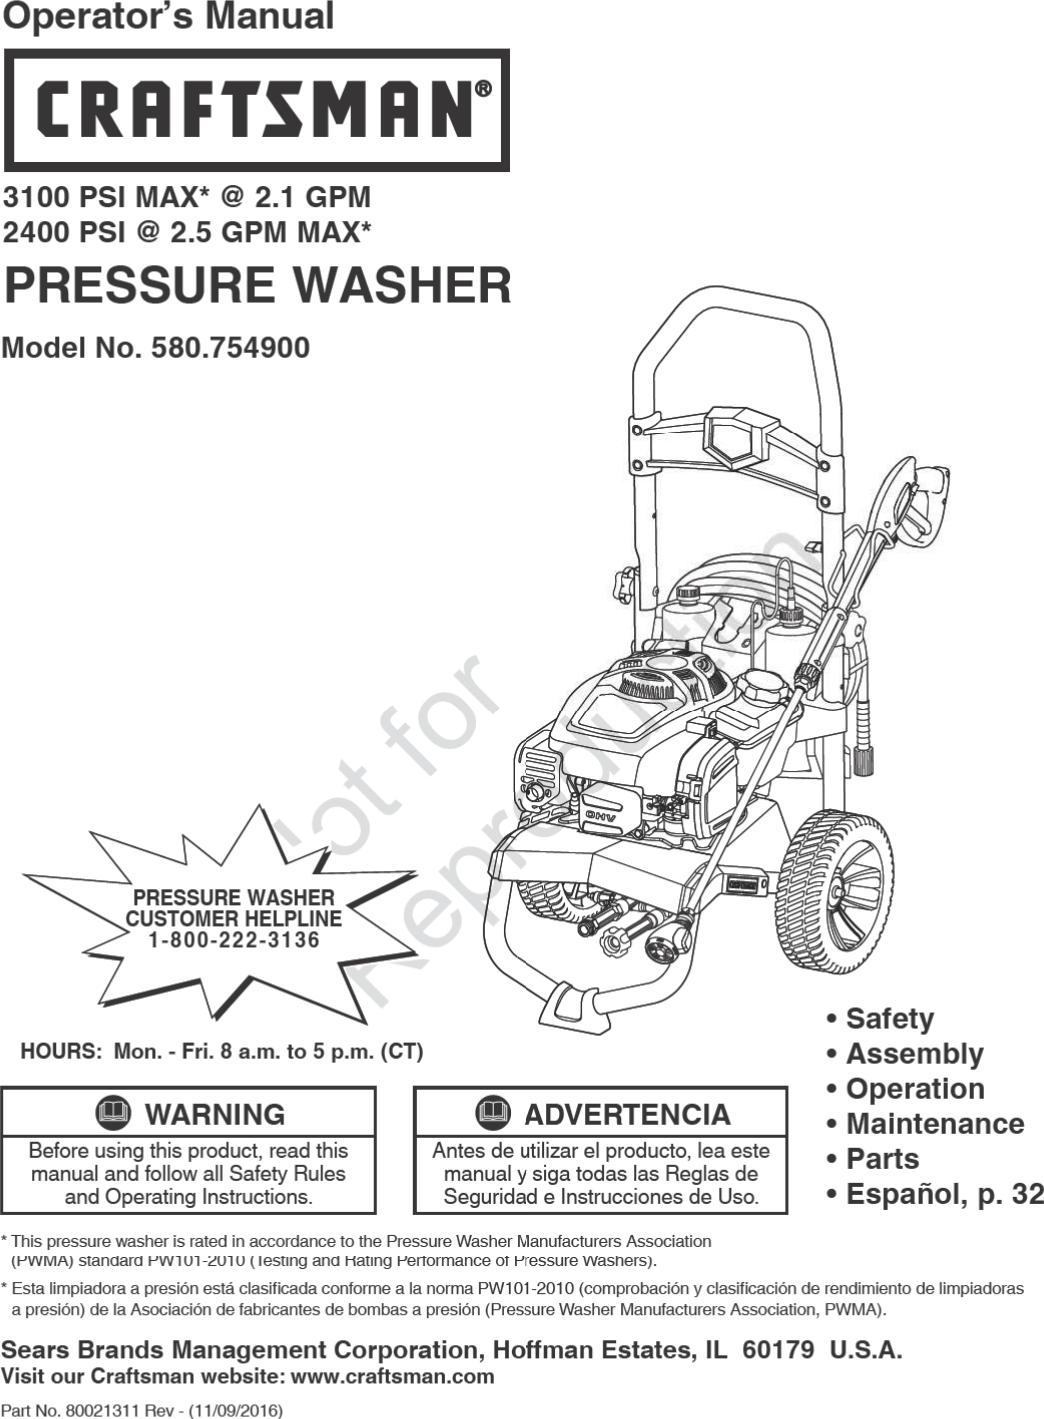 Craftsman 580754900 80021311 User Manual POWER WASHER